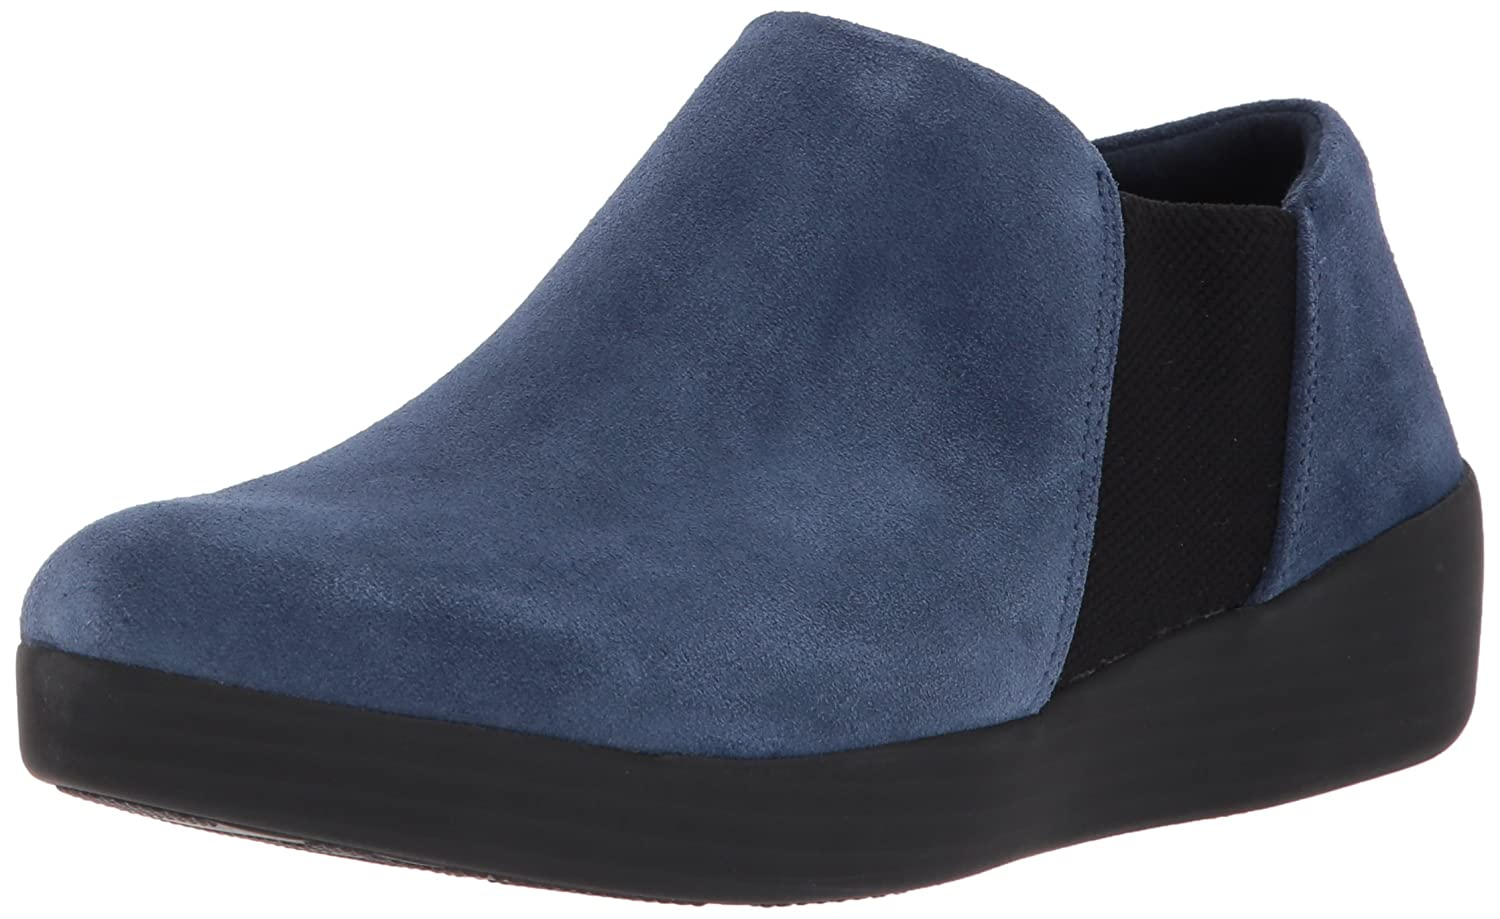 FitFlop Women's Elastic Panel Shoe Bootie Ankle Boot B073ZHH9PT 7.5 B(M) US|Midnight Navy